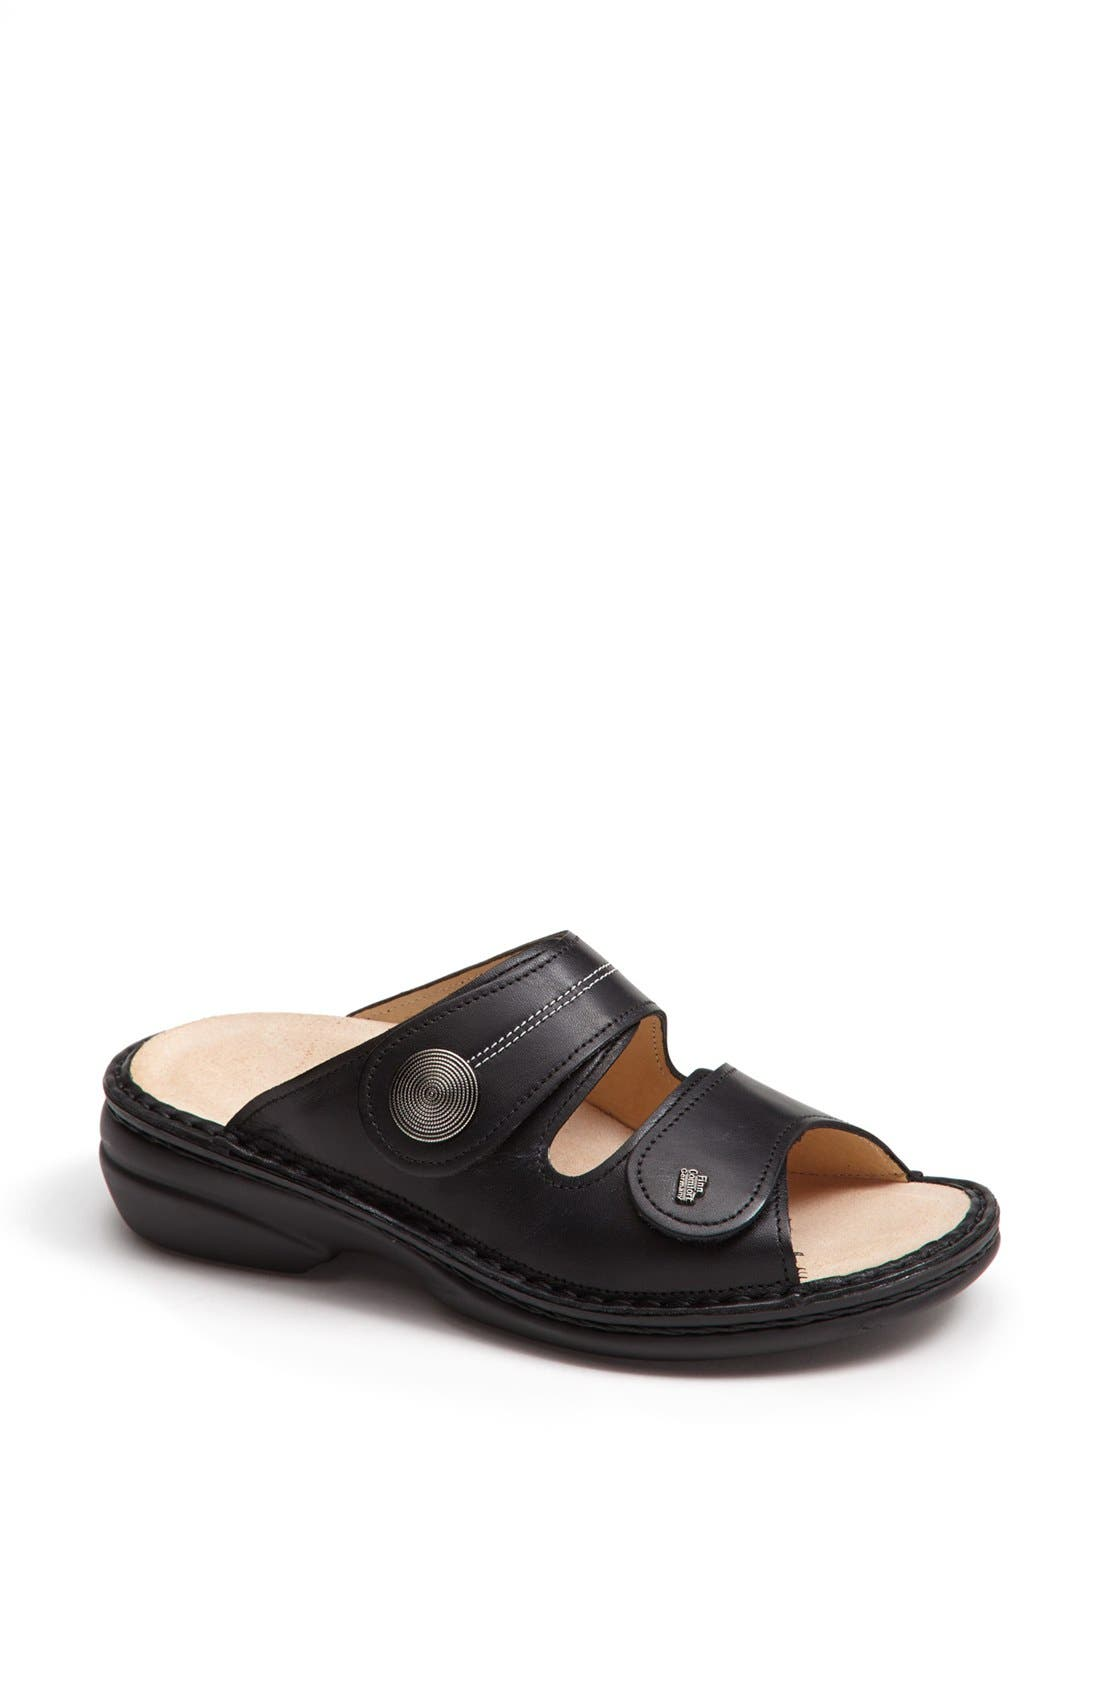 'Sansibar' Sandal,                             Main thumbnail 1, color,                             BLACK